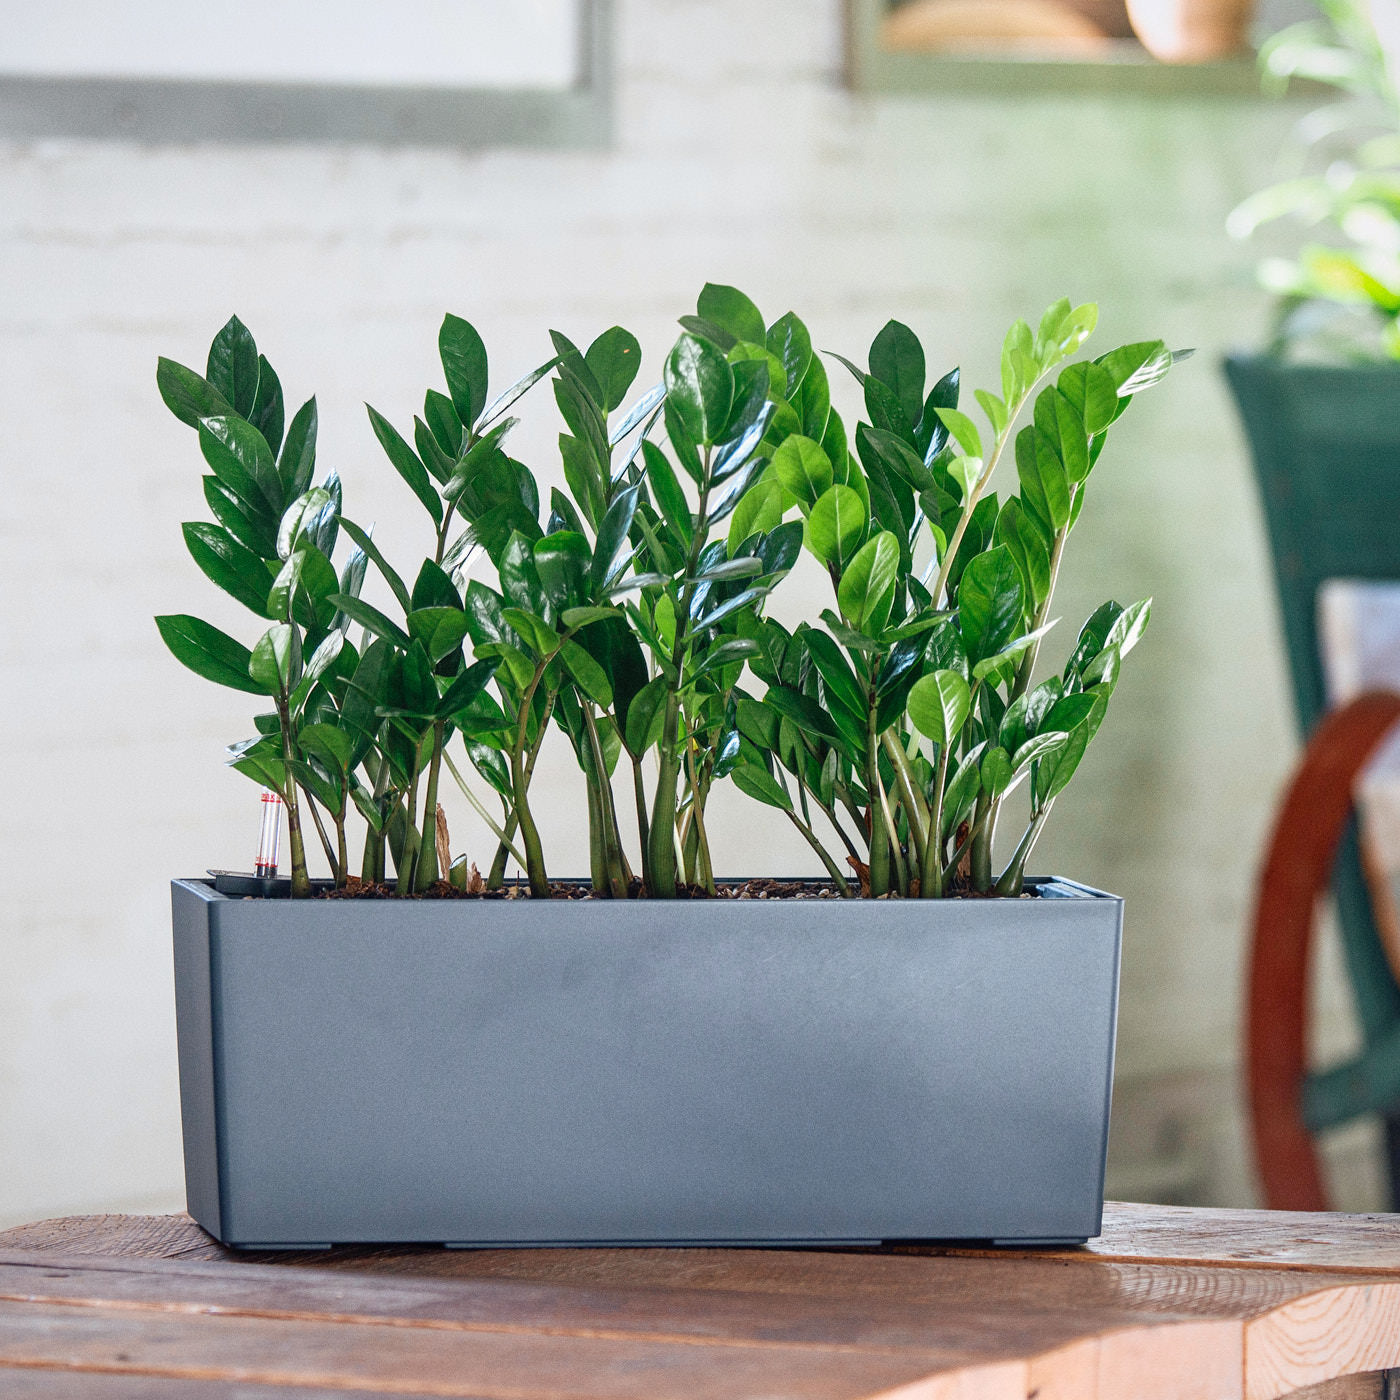 ZZ Plant Potted In Lechuza Balconera Slate Planter | My City Plants